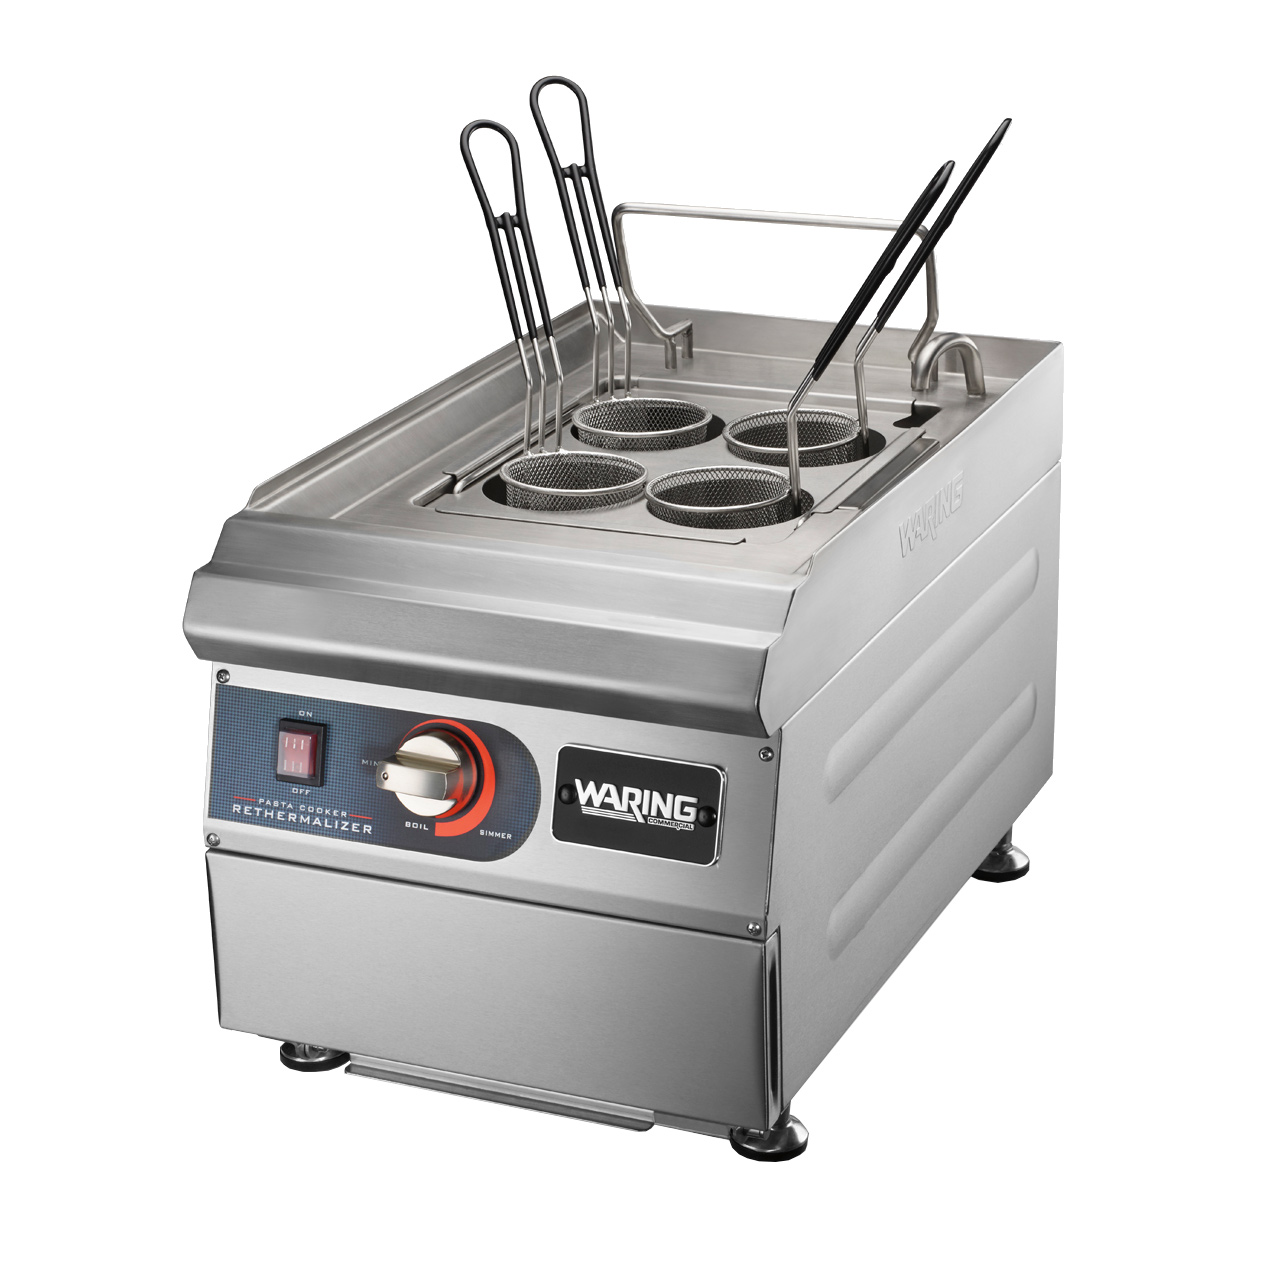 Waring WPC100 pasta cooker, electric